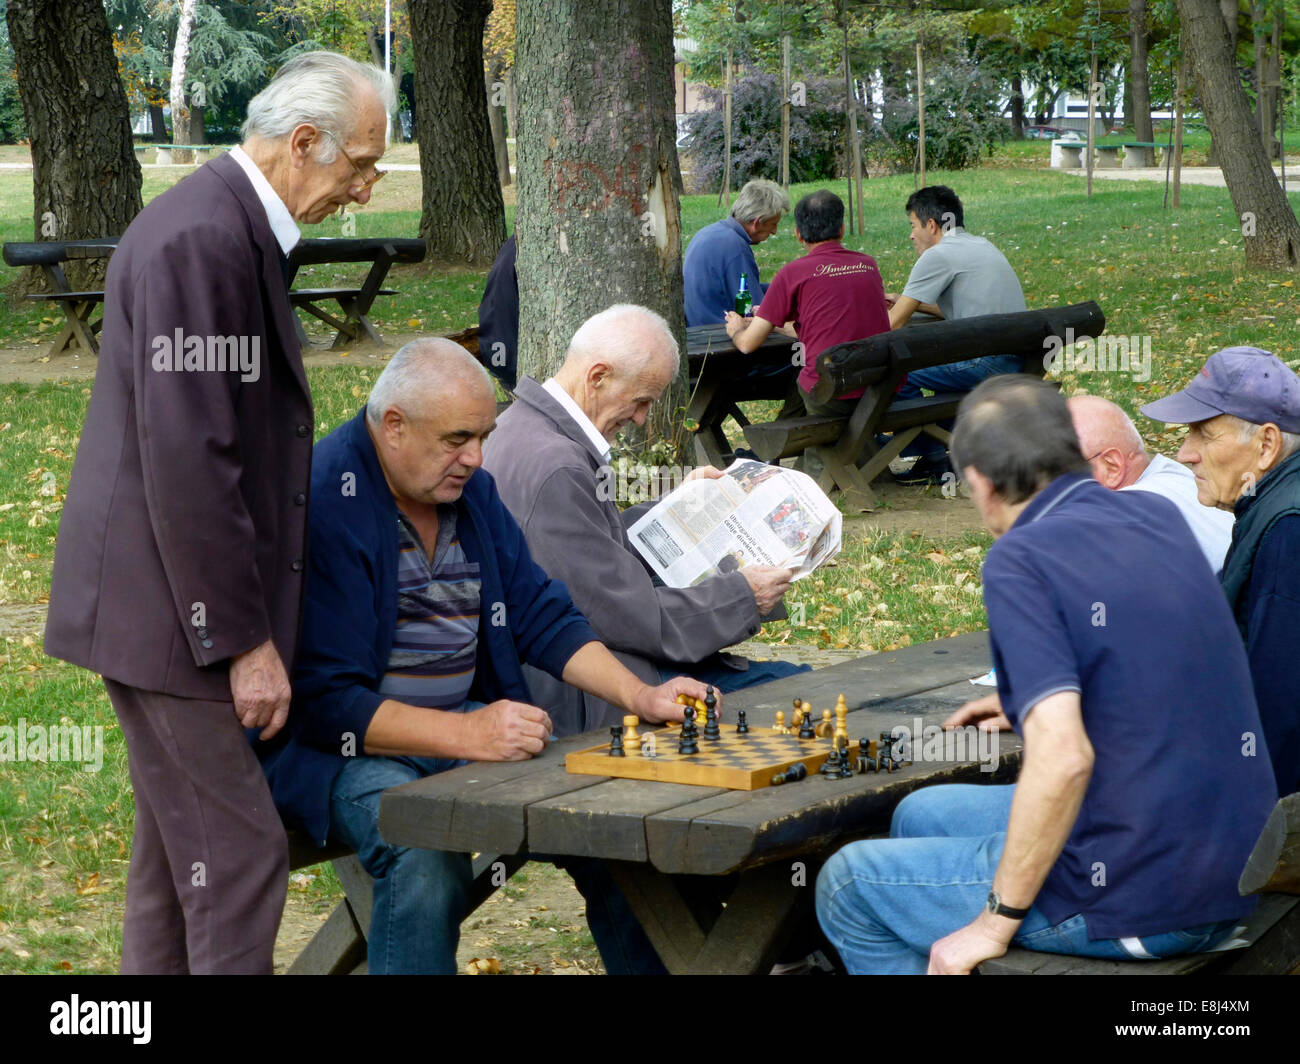 Pensioners playing chess, Belgrade, Serbia - Stock Image